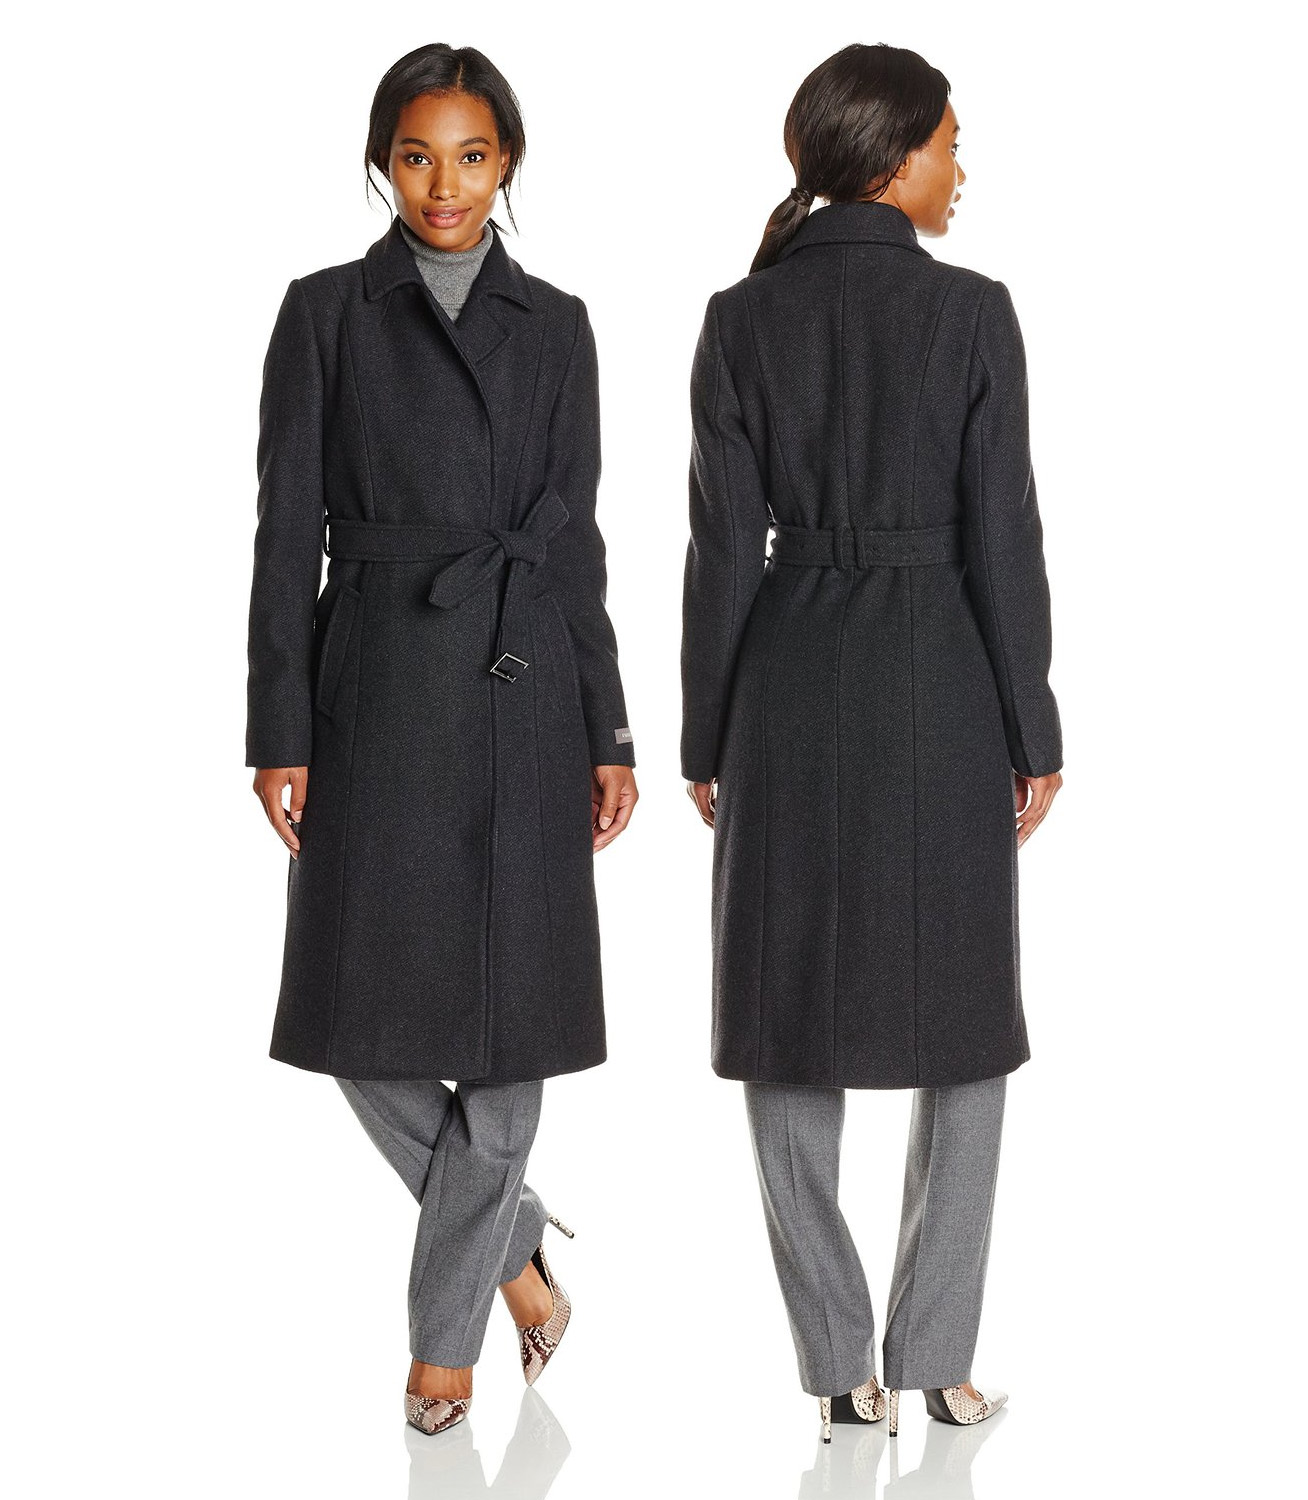 Cole Haan Womens Long Coat with Belt